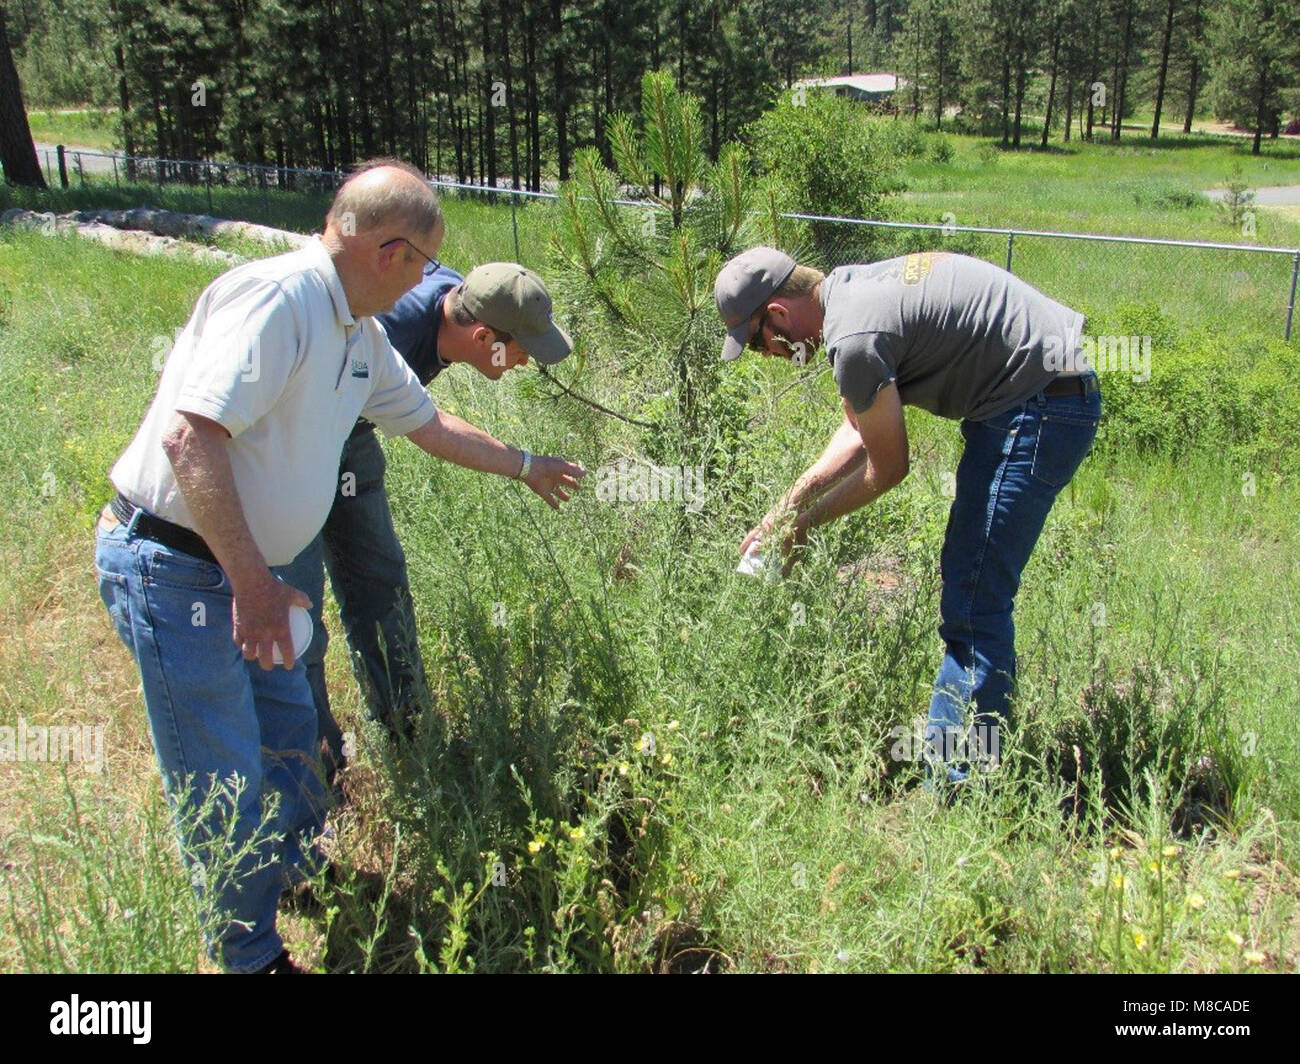 Larry Skillestad of USDA APHIS PPQ Spokane, Washington, oversees the release of lesser knapweed flower weevil (Larinus Stock Photo